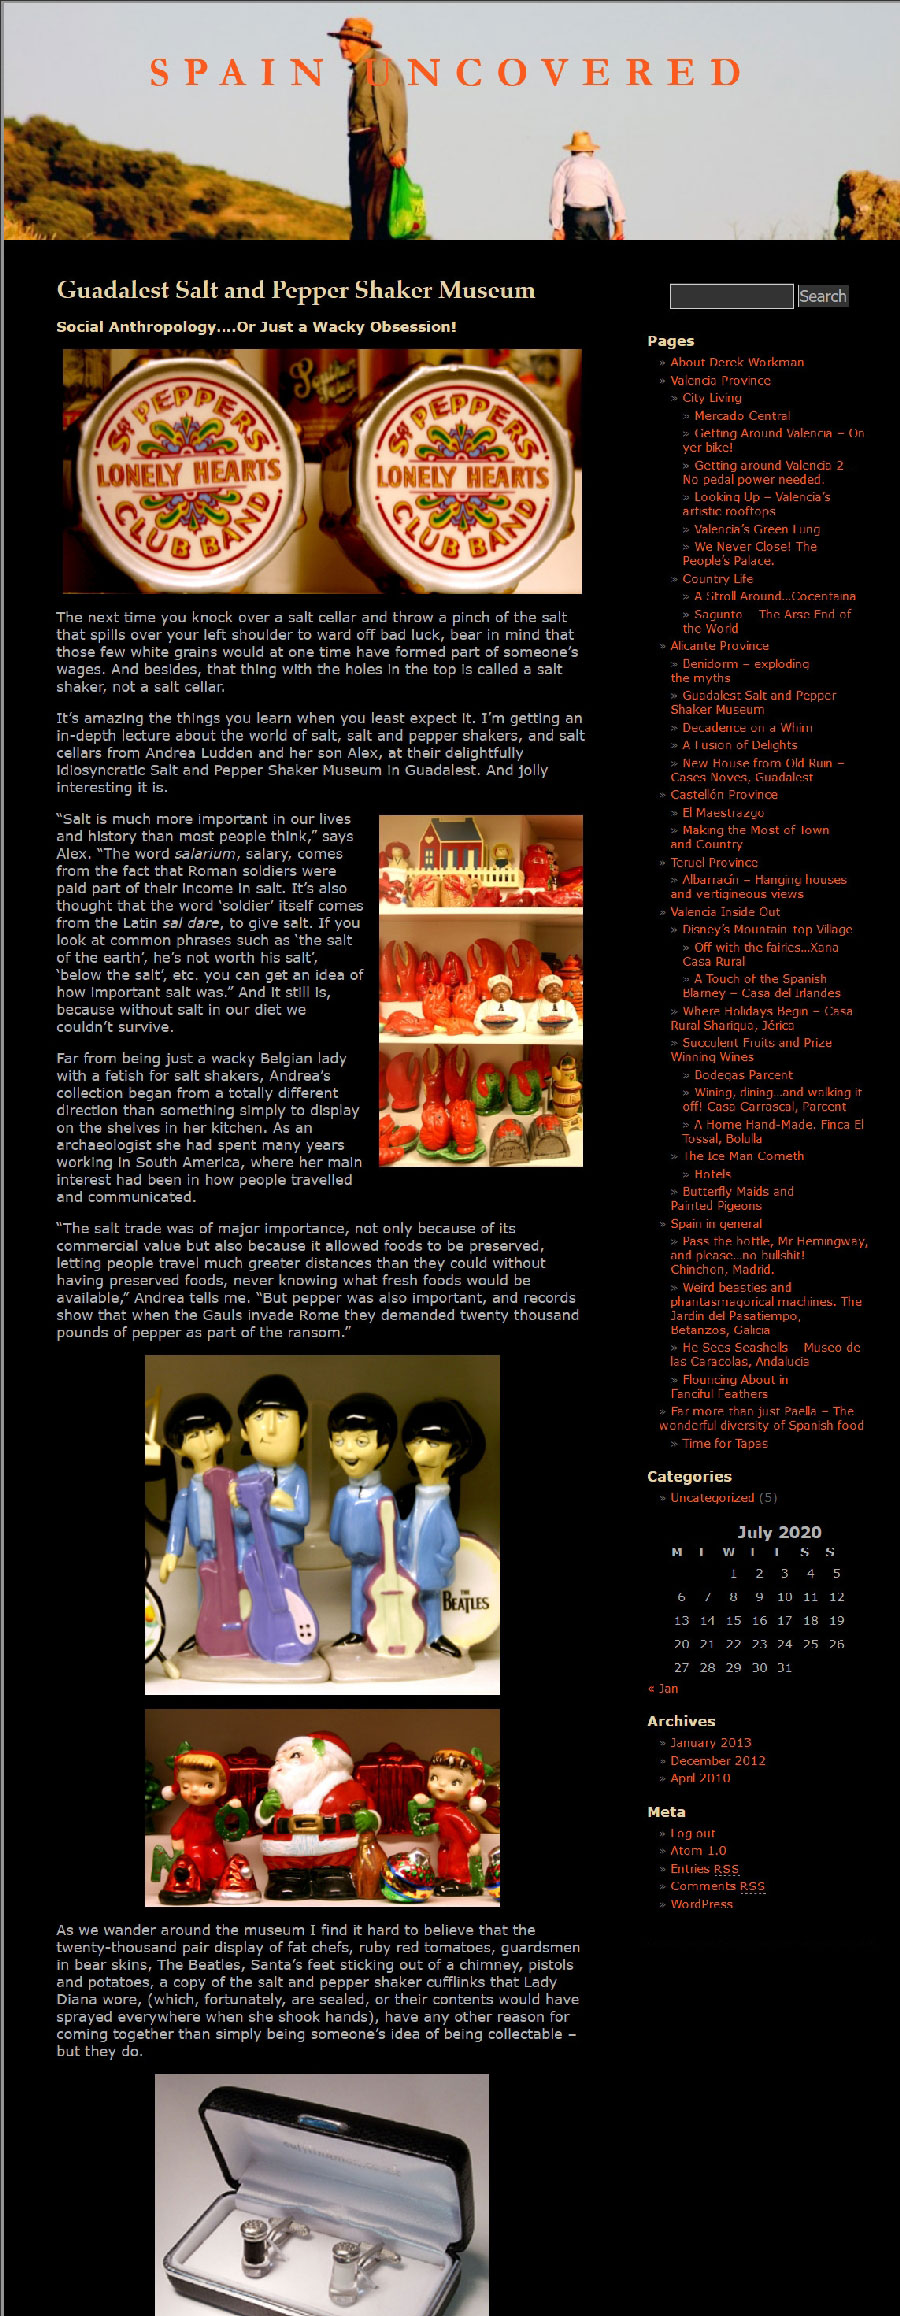 Partial Screenshot of an article written by Derek Workman about the Salt and Pepper Shaker Museum